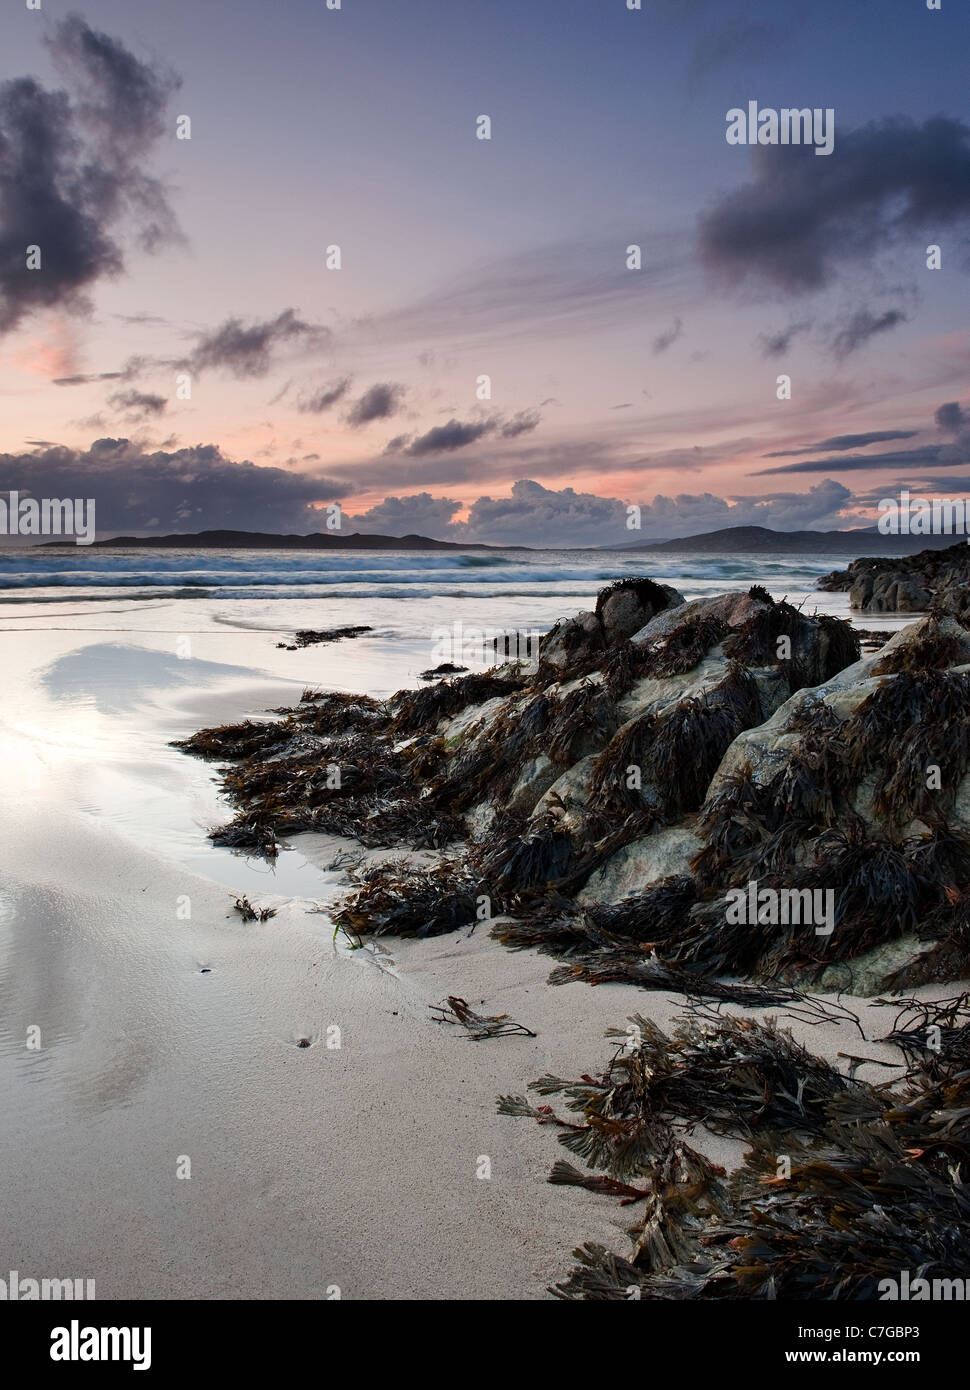 Sunset at Traigh Burgh on the island of South Harris in the Outer Hebrides - Stock Image